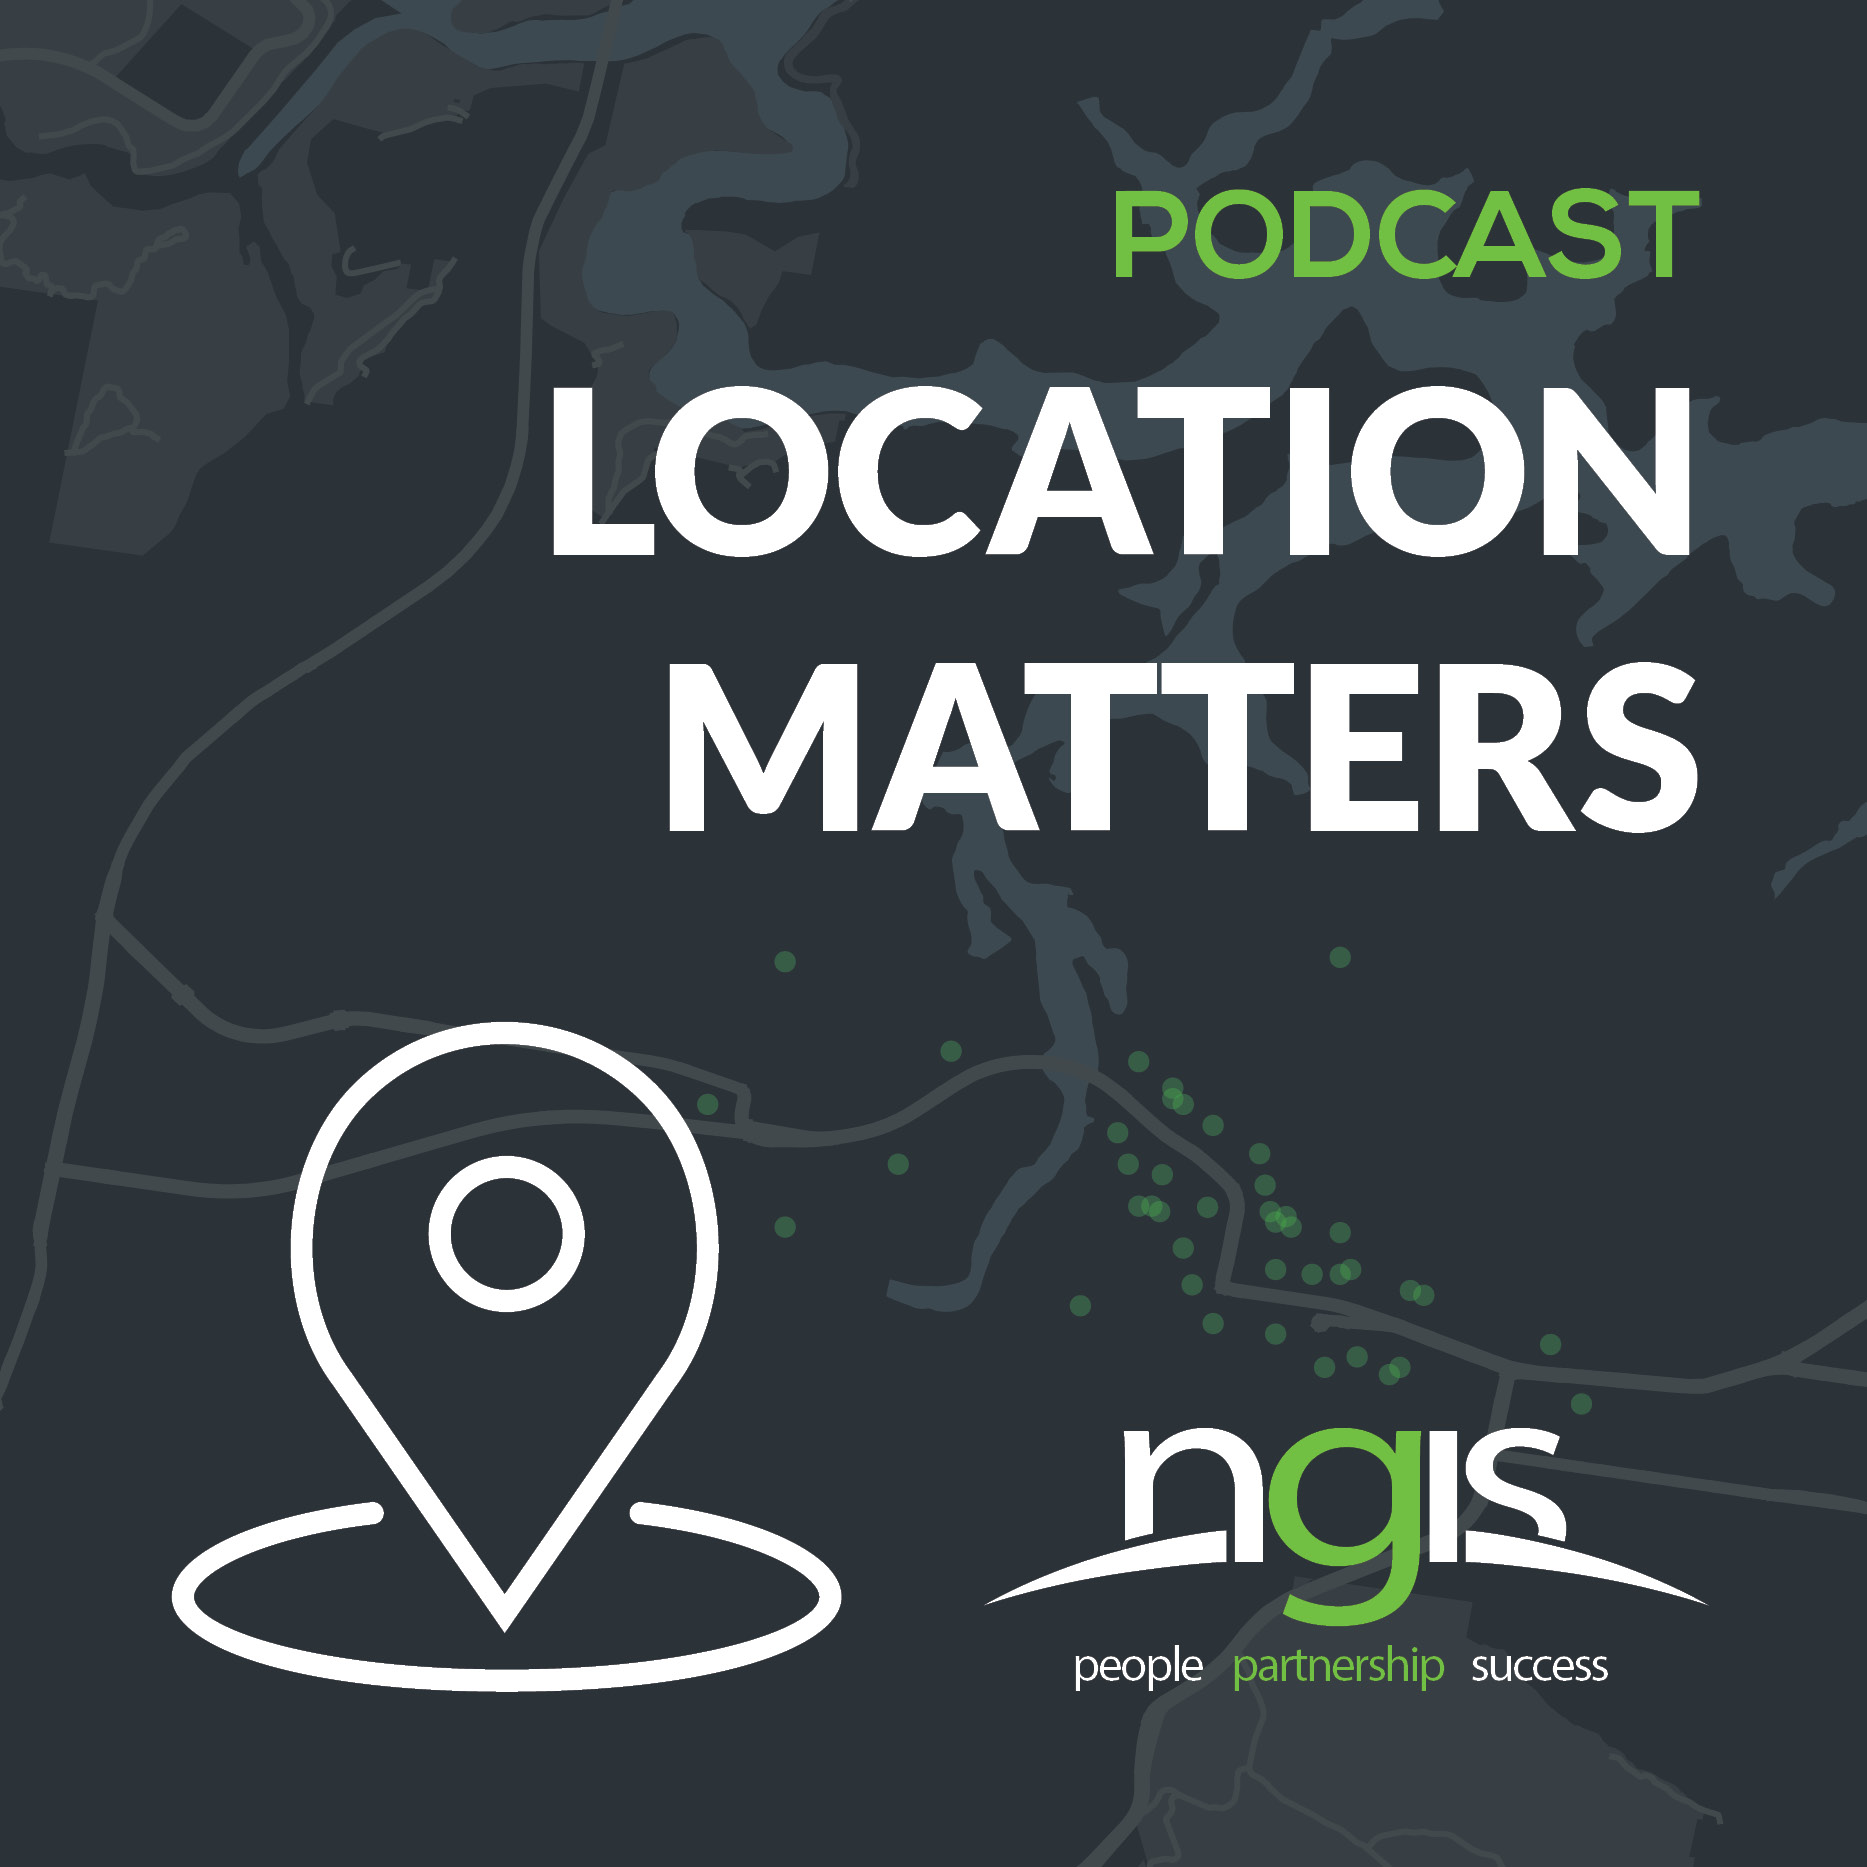 Artwork for podcast Location Matters